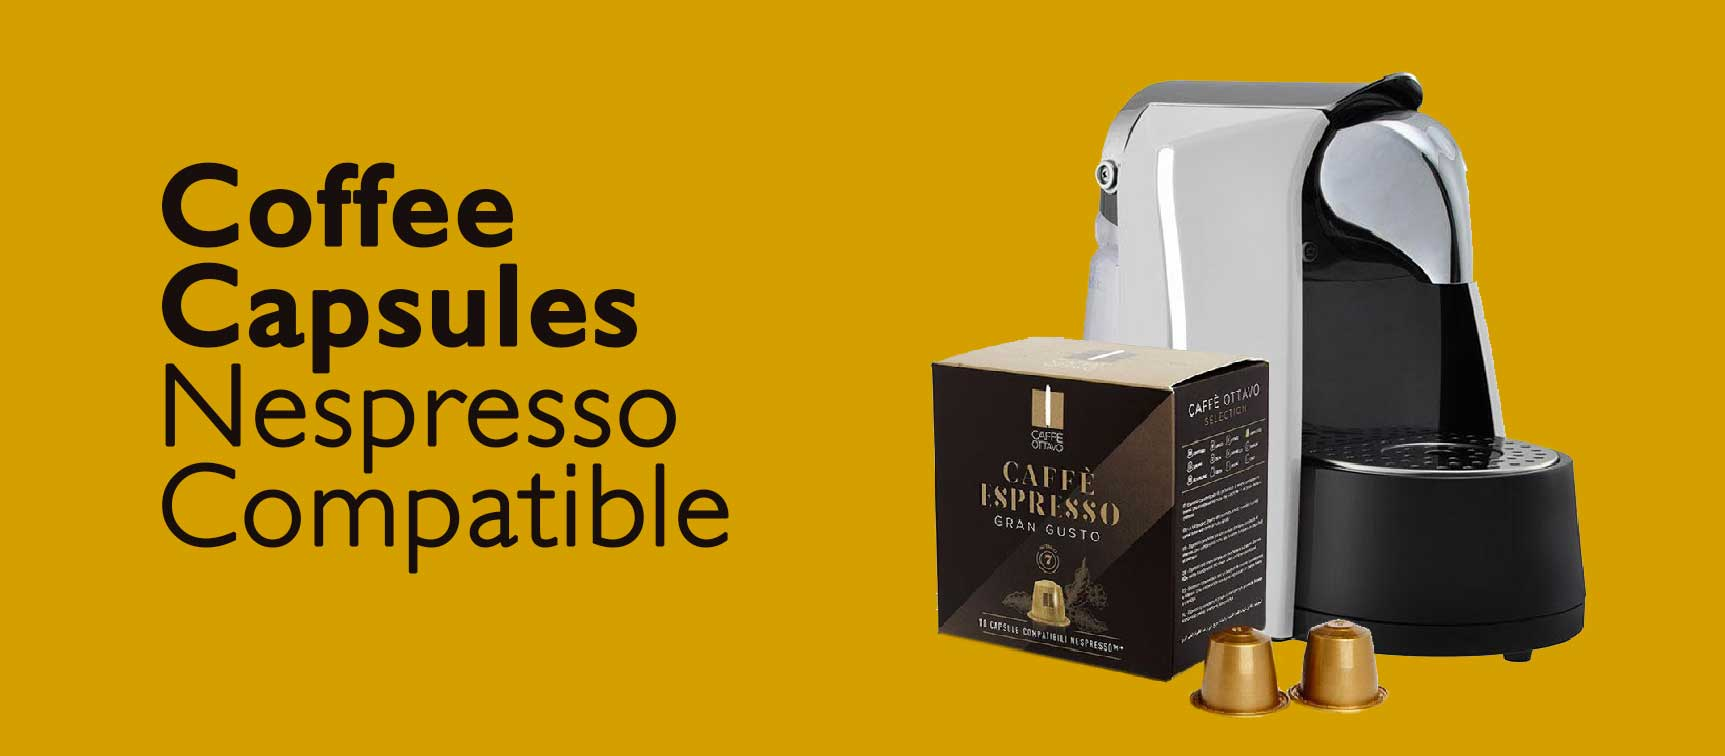 Coffee Capsules. Nespresso compatible coffee pods or capsules.